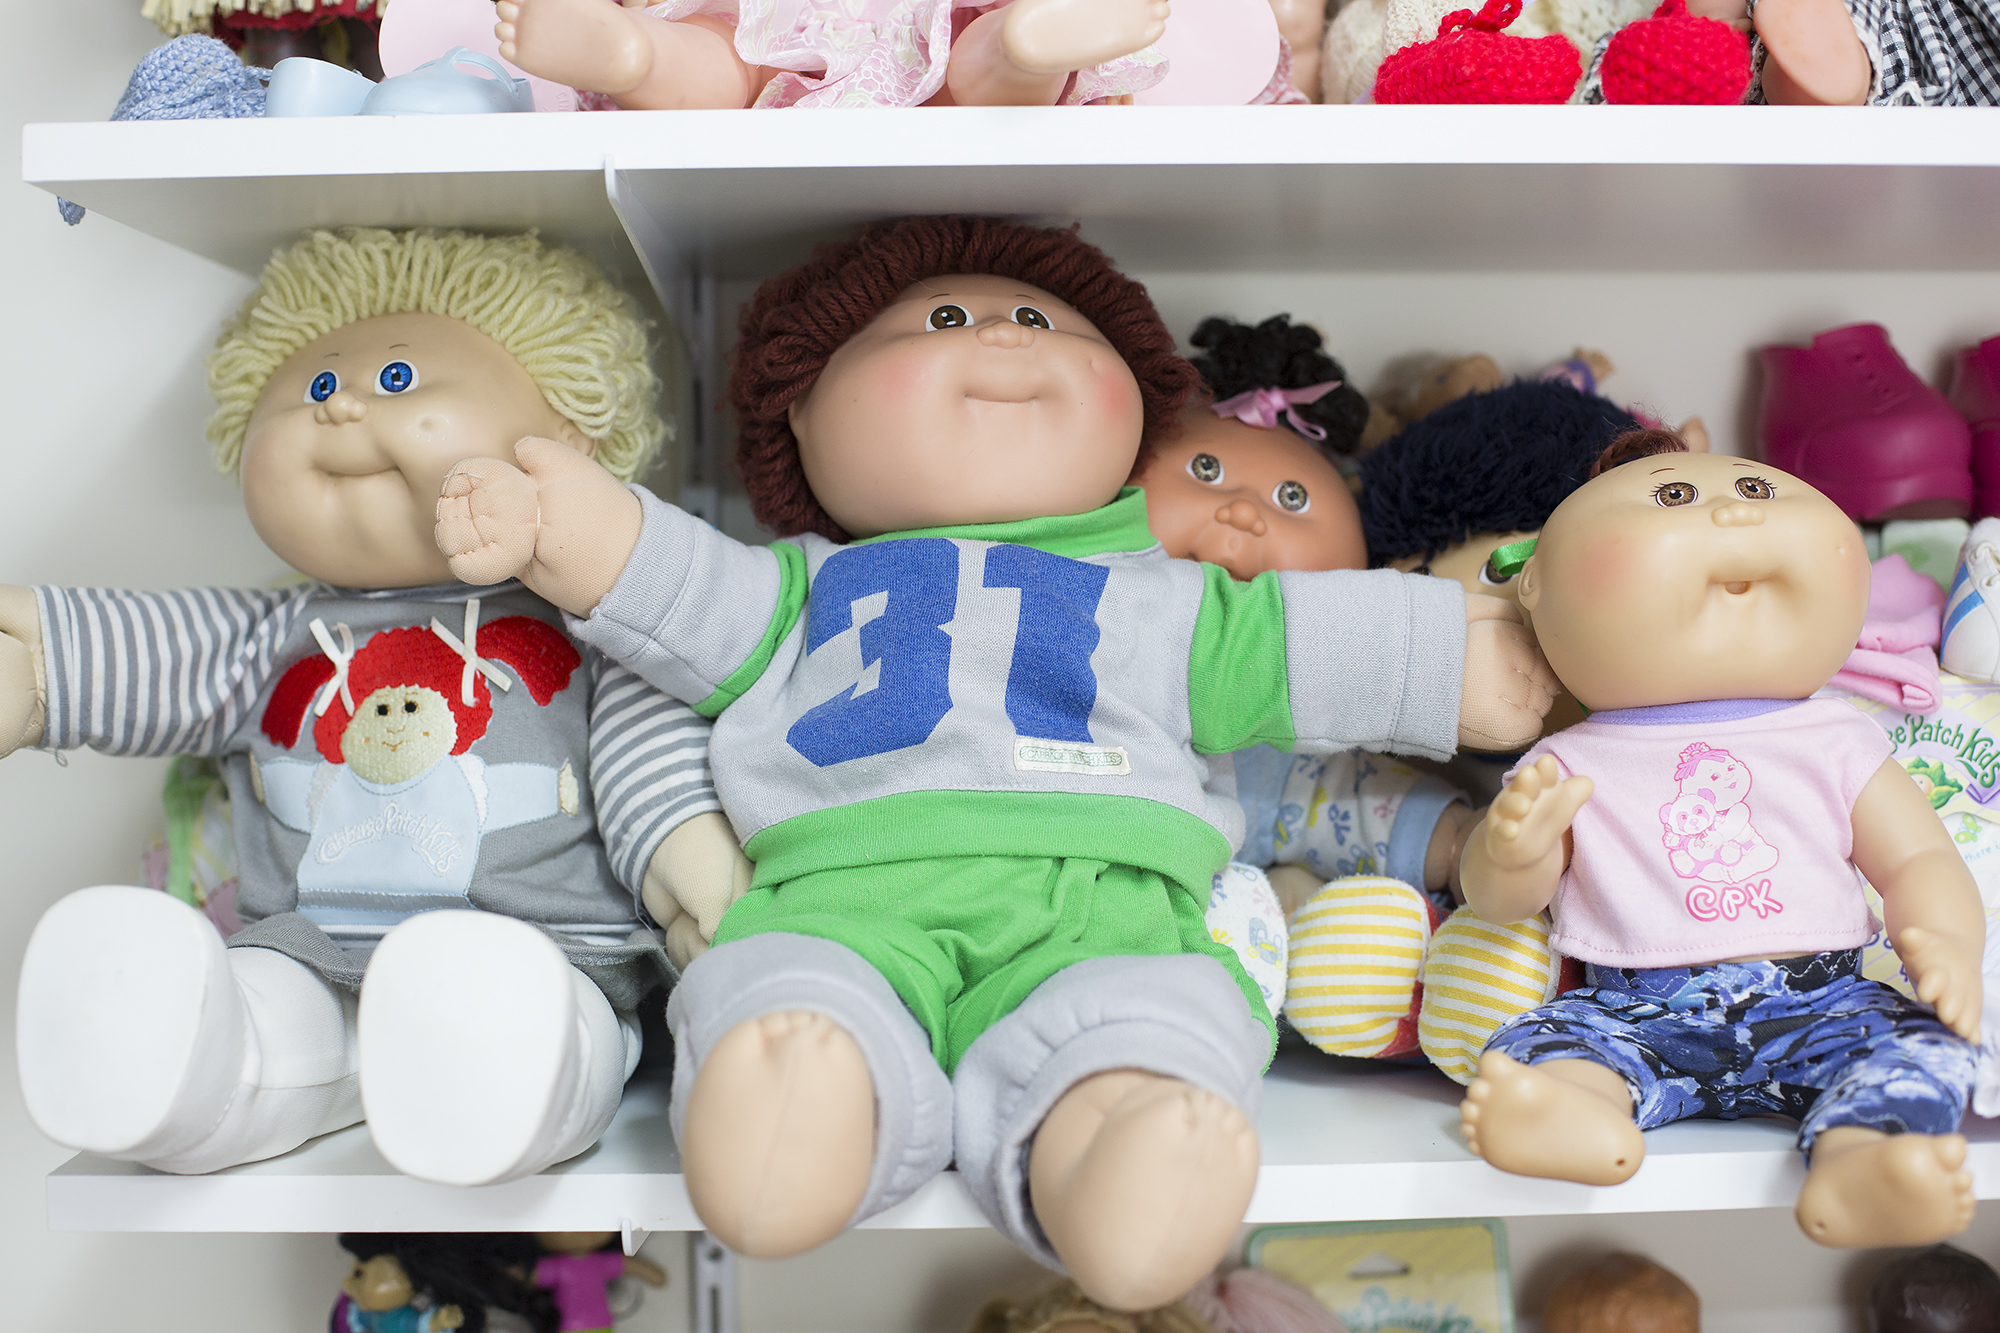 Cabbage Patch Dolls (two boy dolls)1970s.